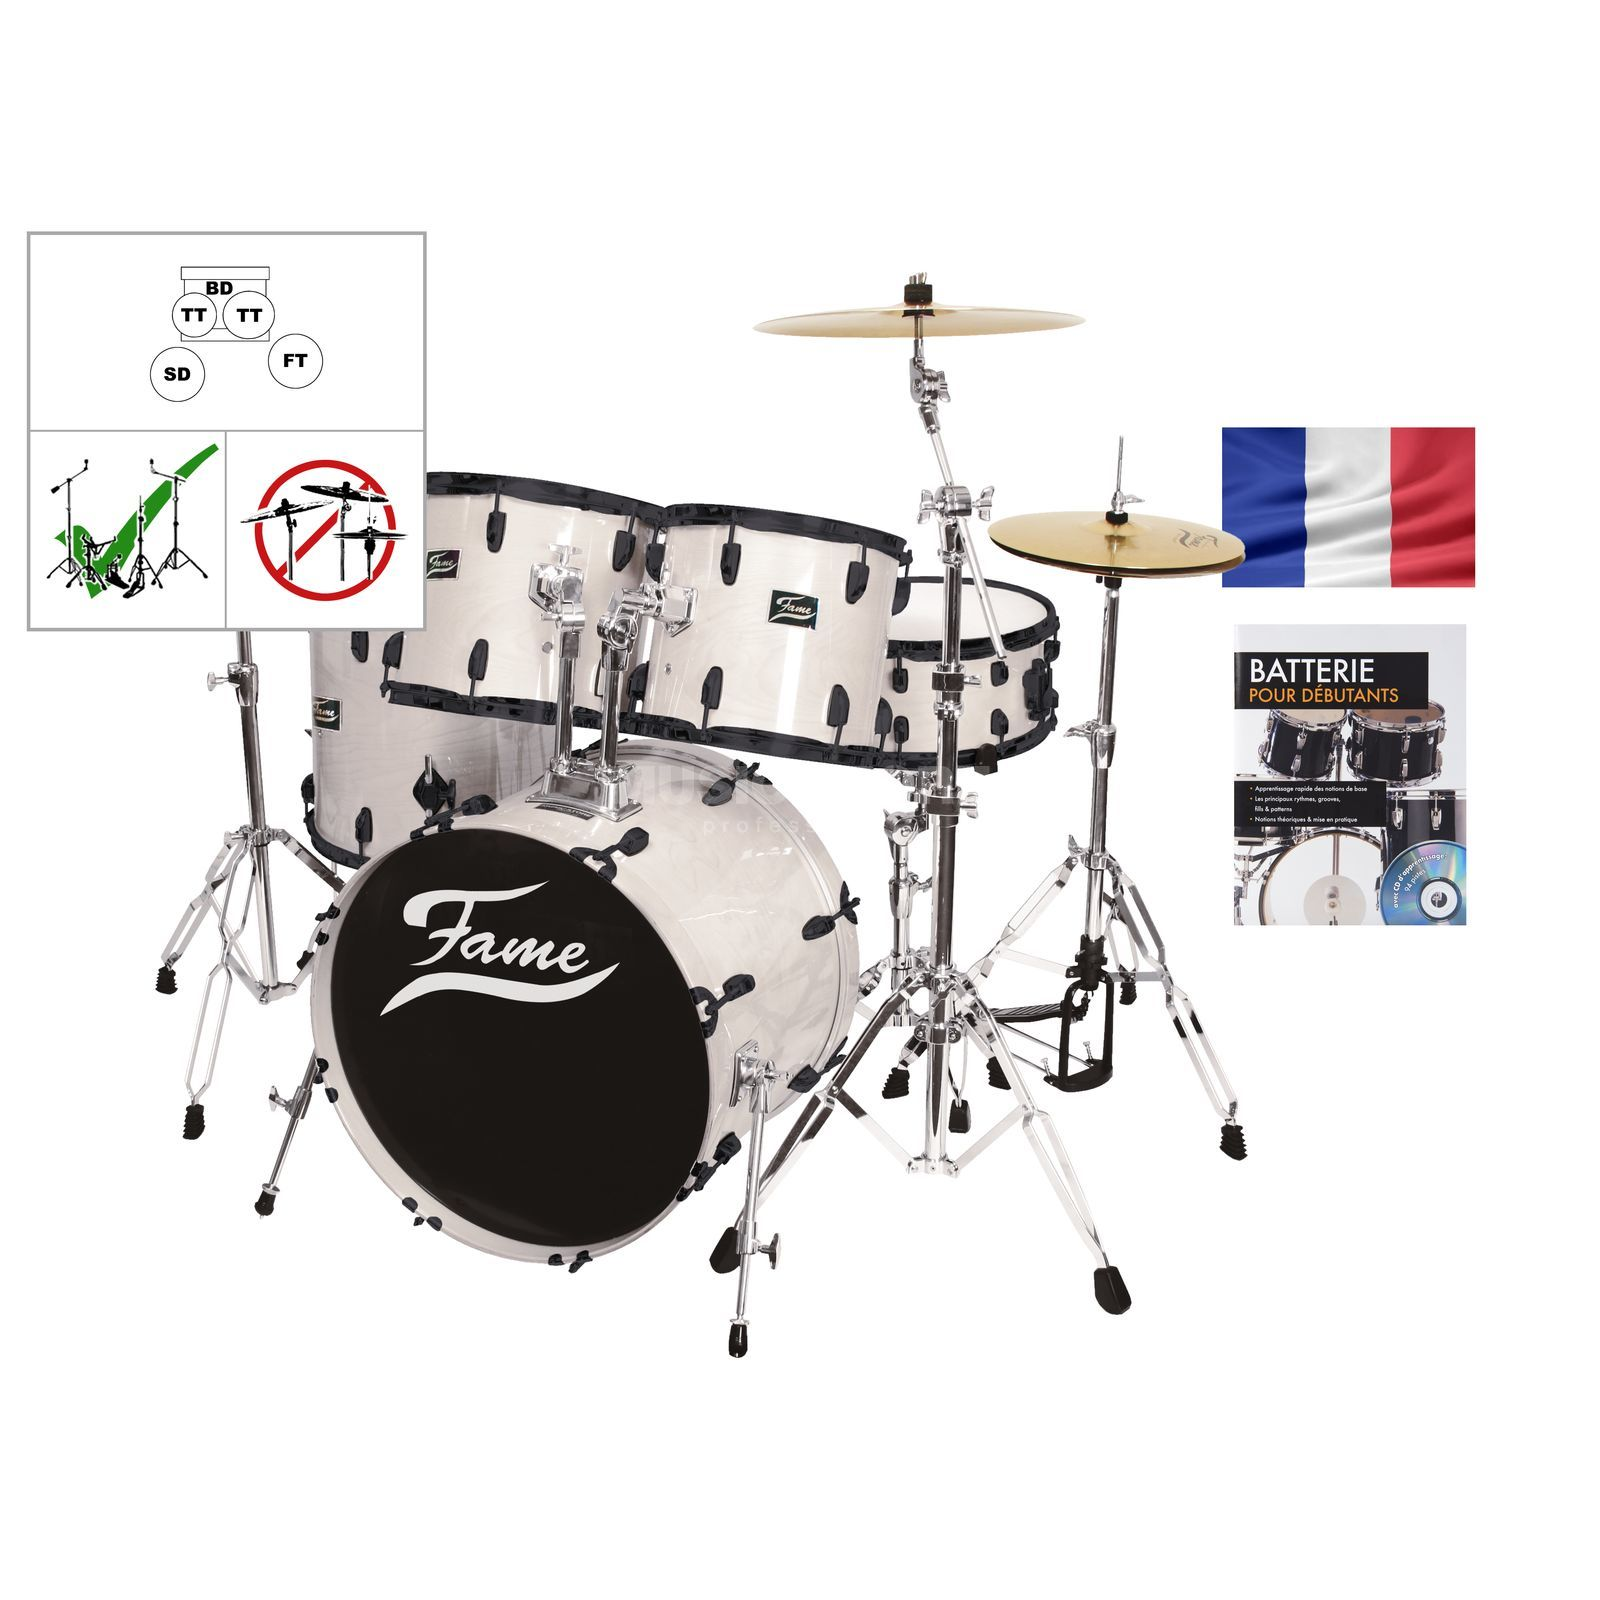 SET Batterie acoustique FAME 5201, blanc + partitions Produktbild